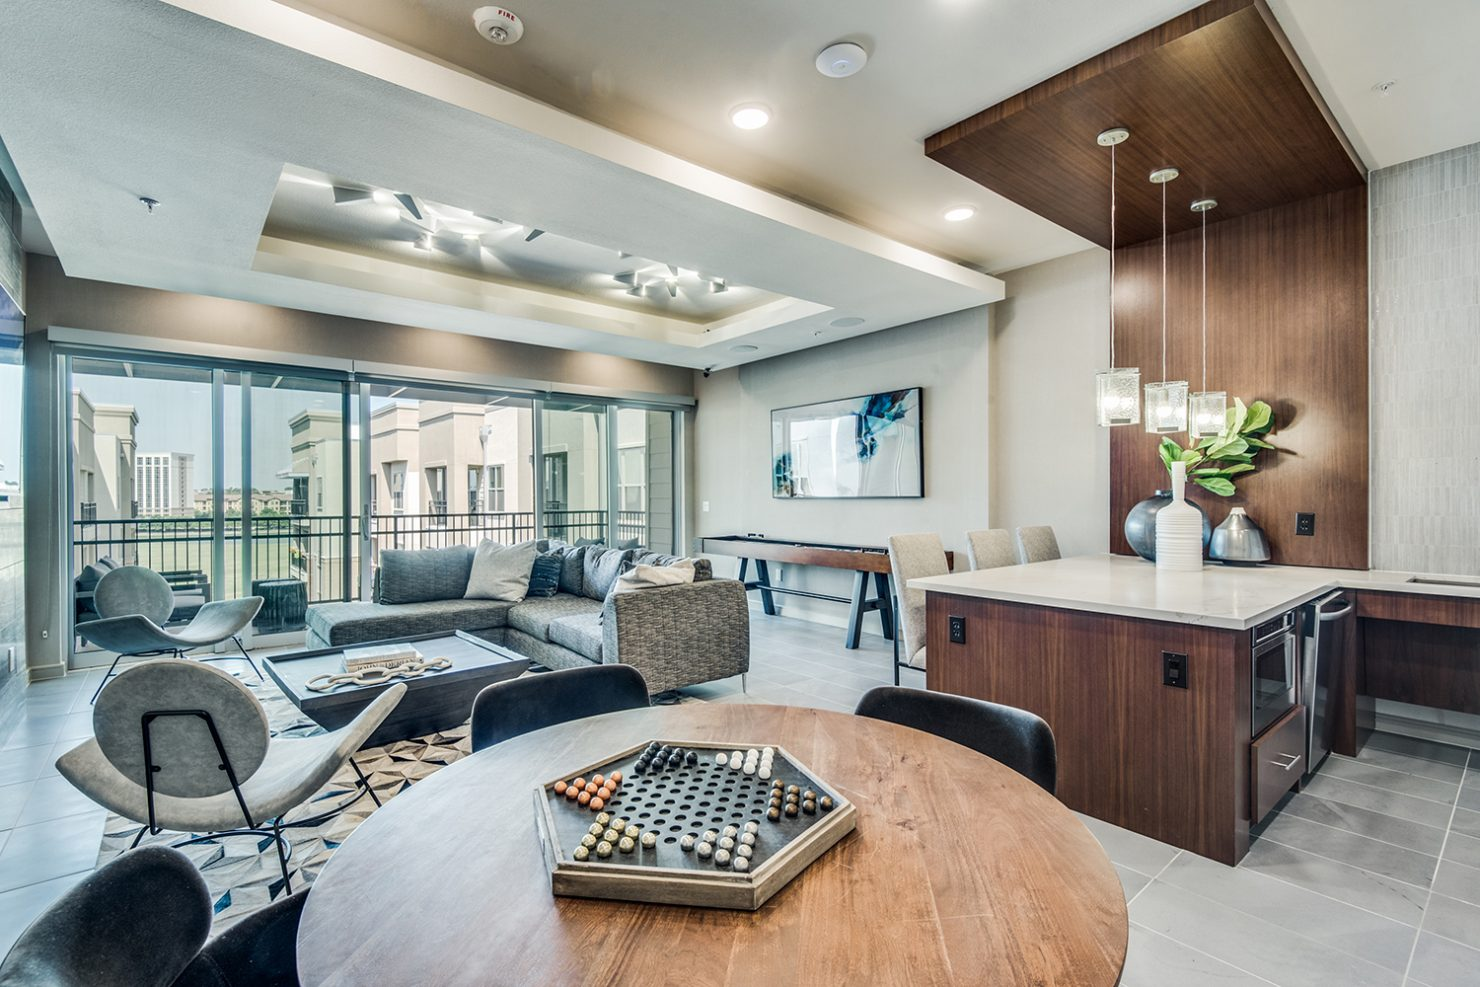 Clubroom with seating area, balcony, shuffleboard, demonstration kitchen, and Chinese checkers